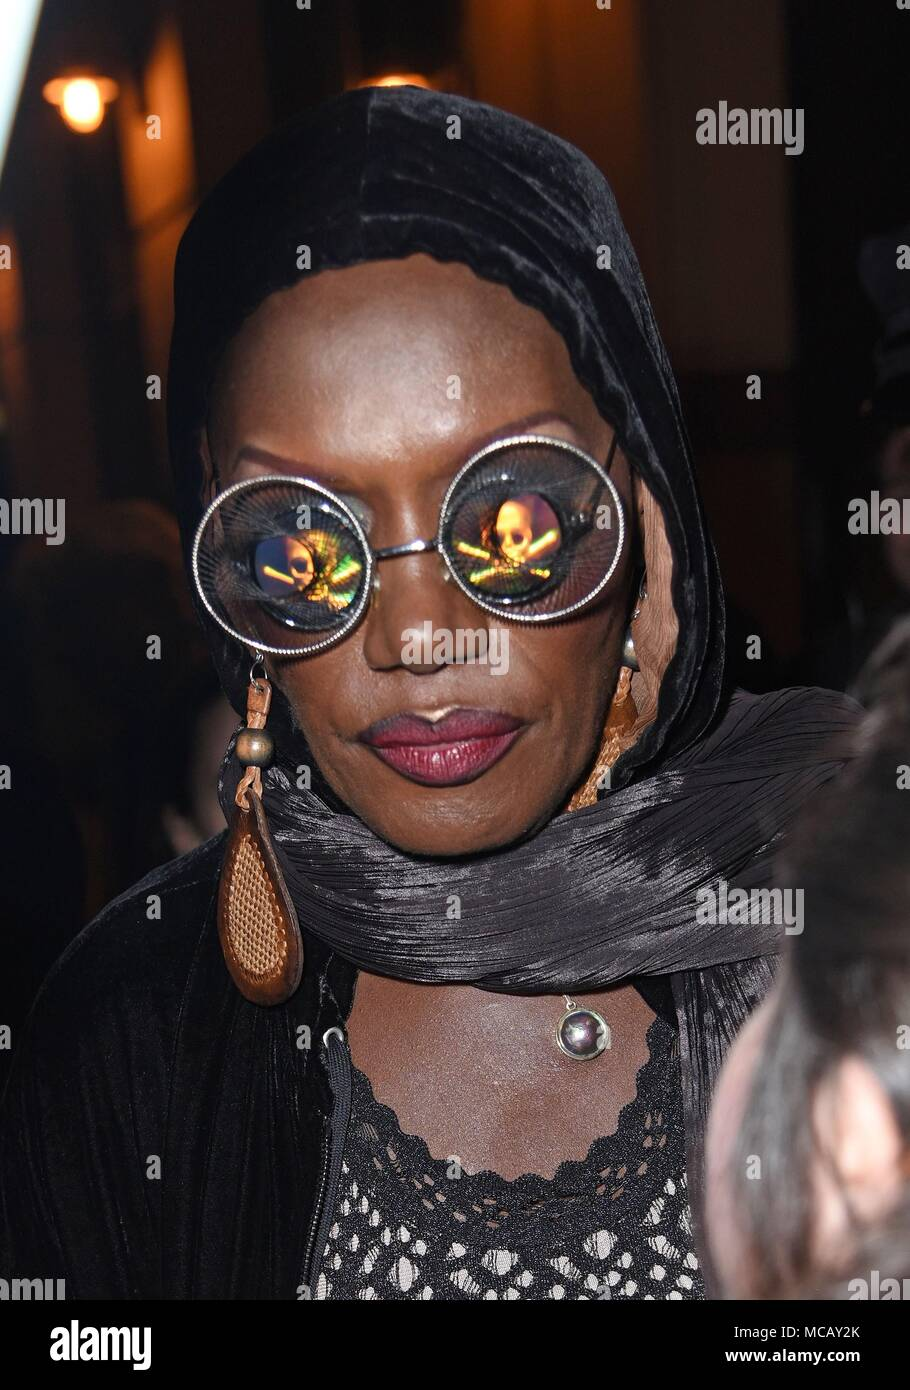 New York, NY, USA. 14th Apr, 2018. Grace Jones at arrivals for GRACE JONES: BLOODLIGHT AND BAMI Screening, Walter Reade Theater, New York, NY April 14, 2018. Credit: Derek Storm/Everett Collection/Alamy Live News - Stock Image